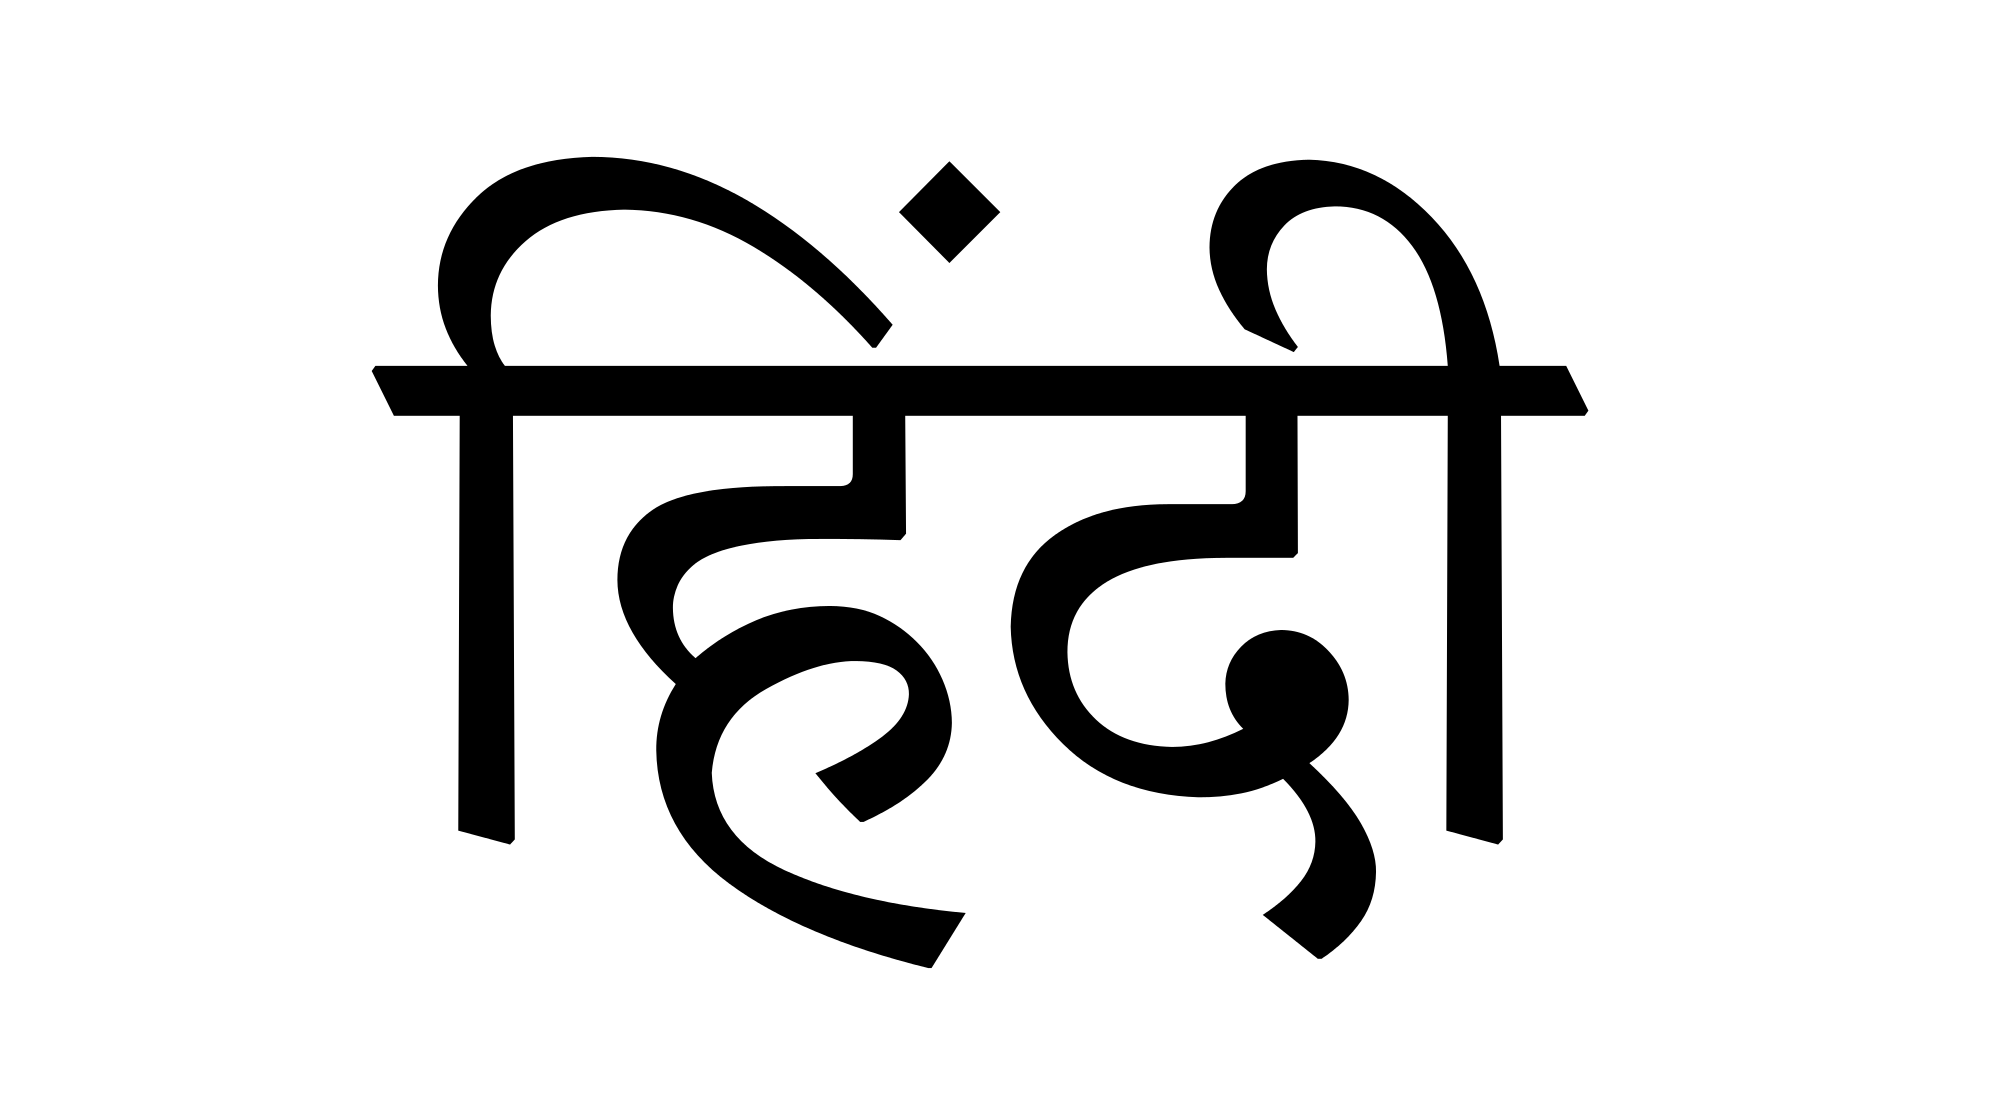 Hindi is the Largest Spoken Indian language in the United States